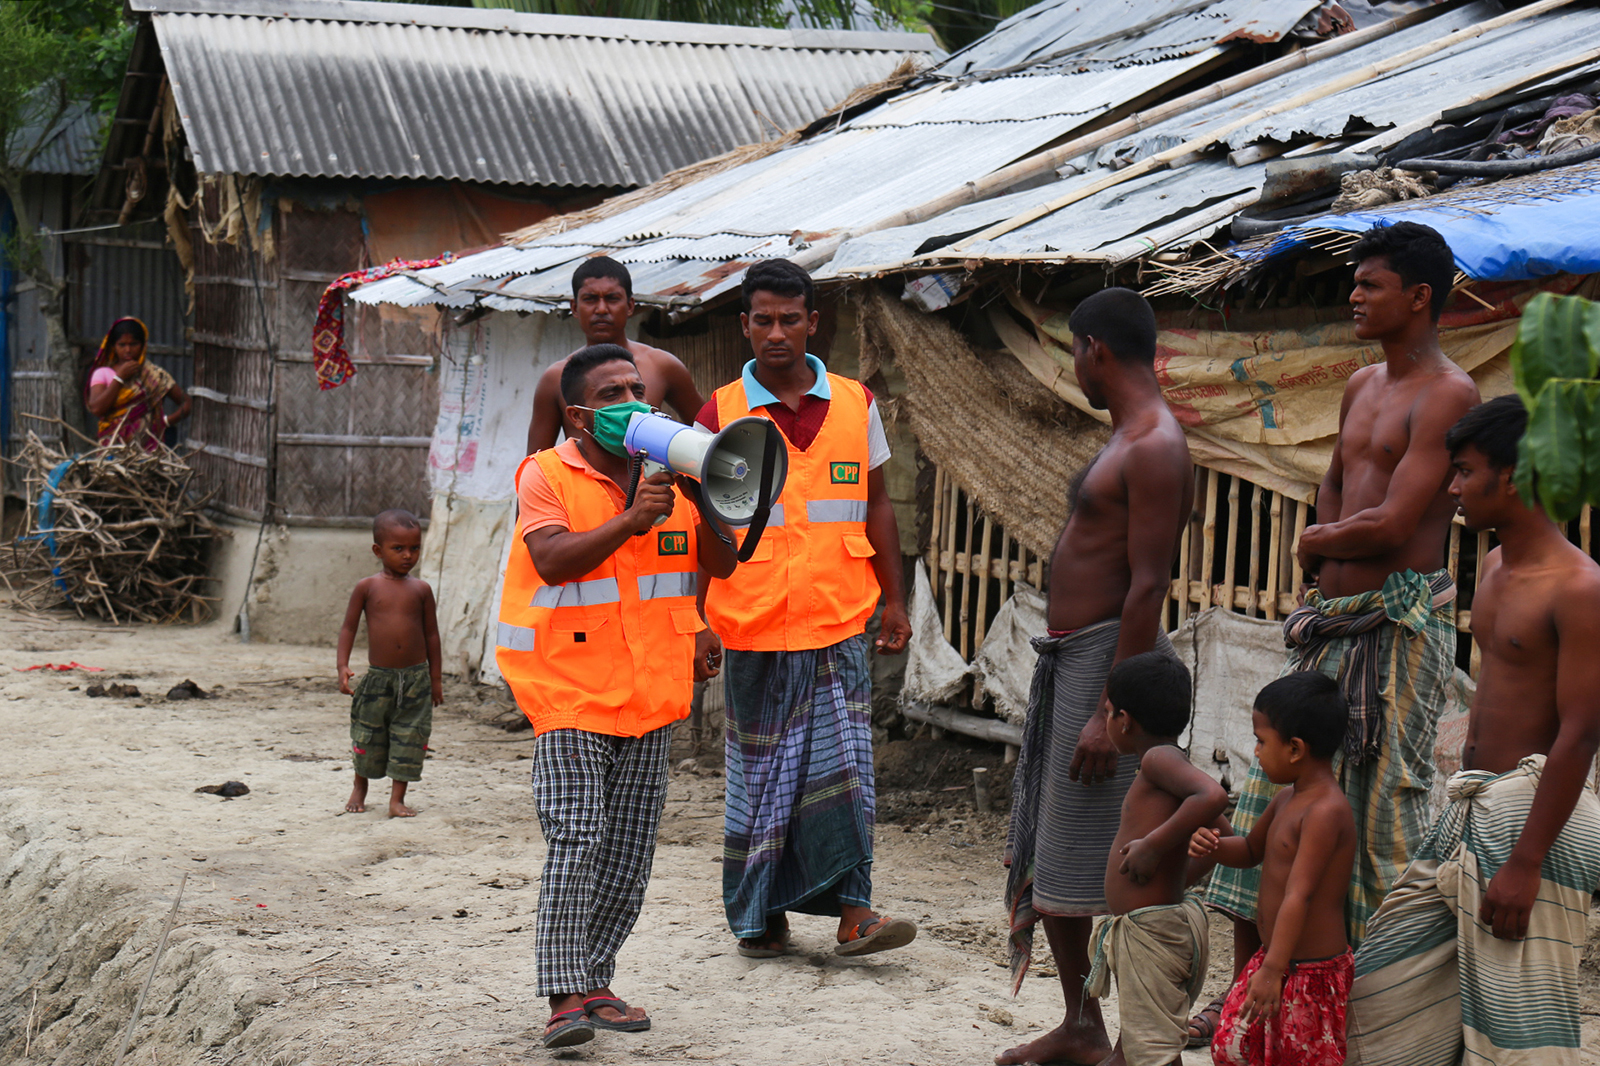 A cyclone preparedness program volunteer uses a megaphone to urge residents to evacuate to shelters ahead of the expected landfall of Super Cyclone Amphan in Khulna, Bangladesh on May 19.